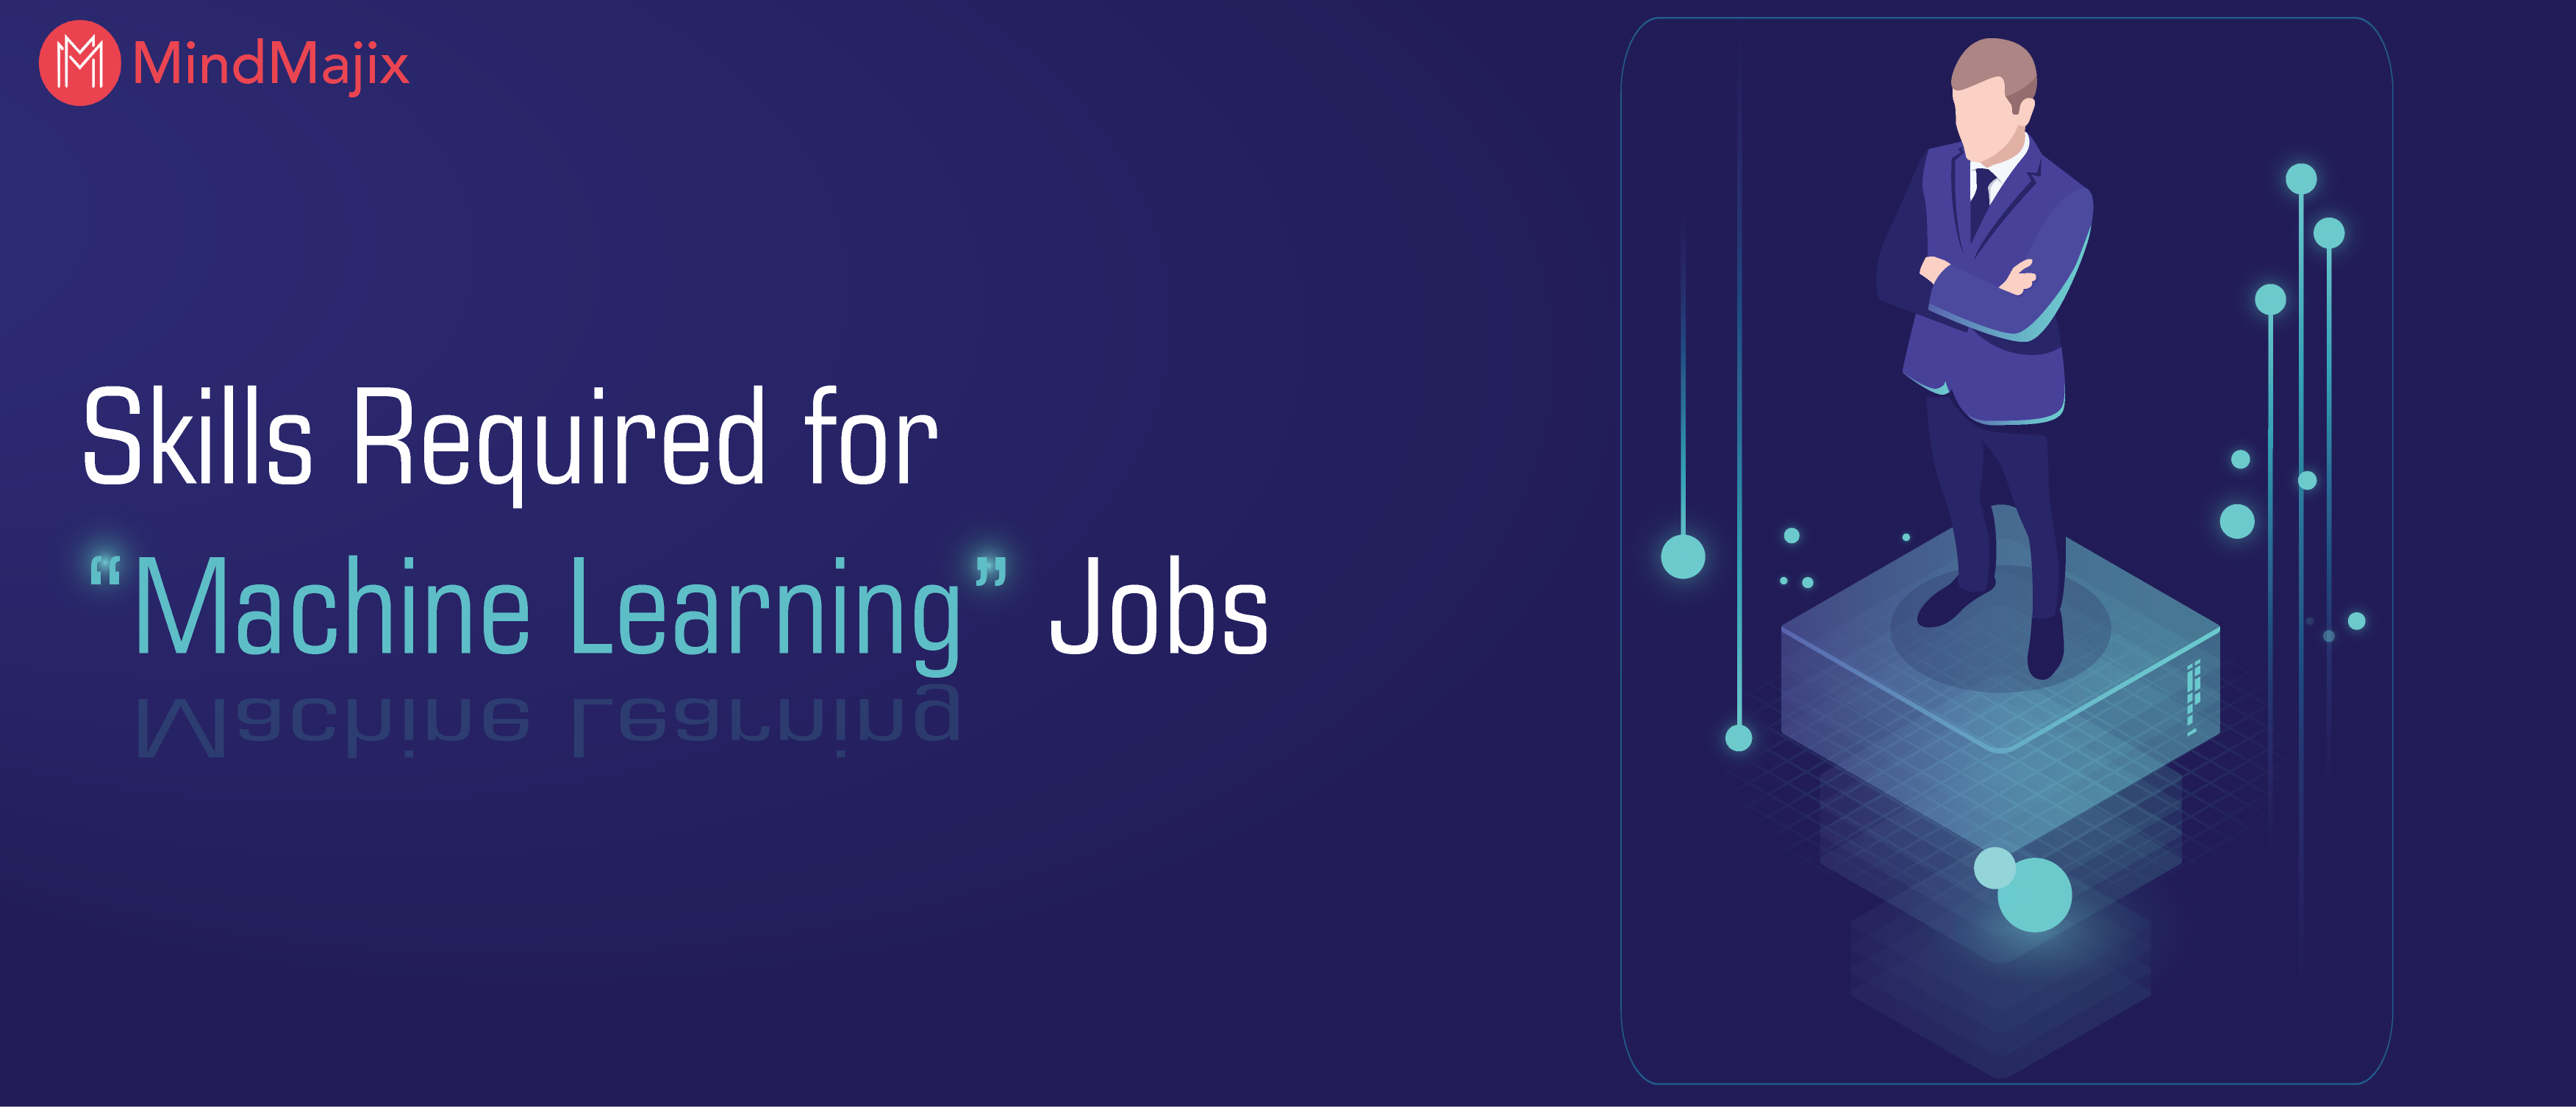 Skills Required for Machine Learning